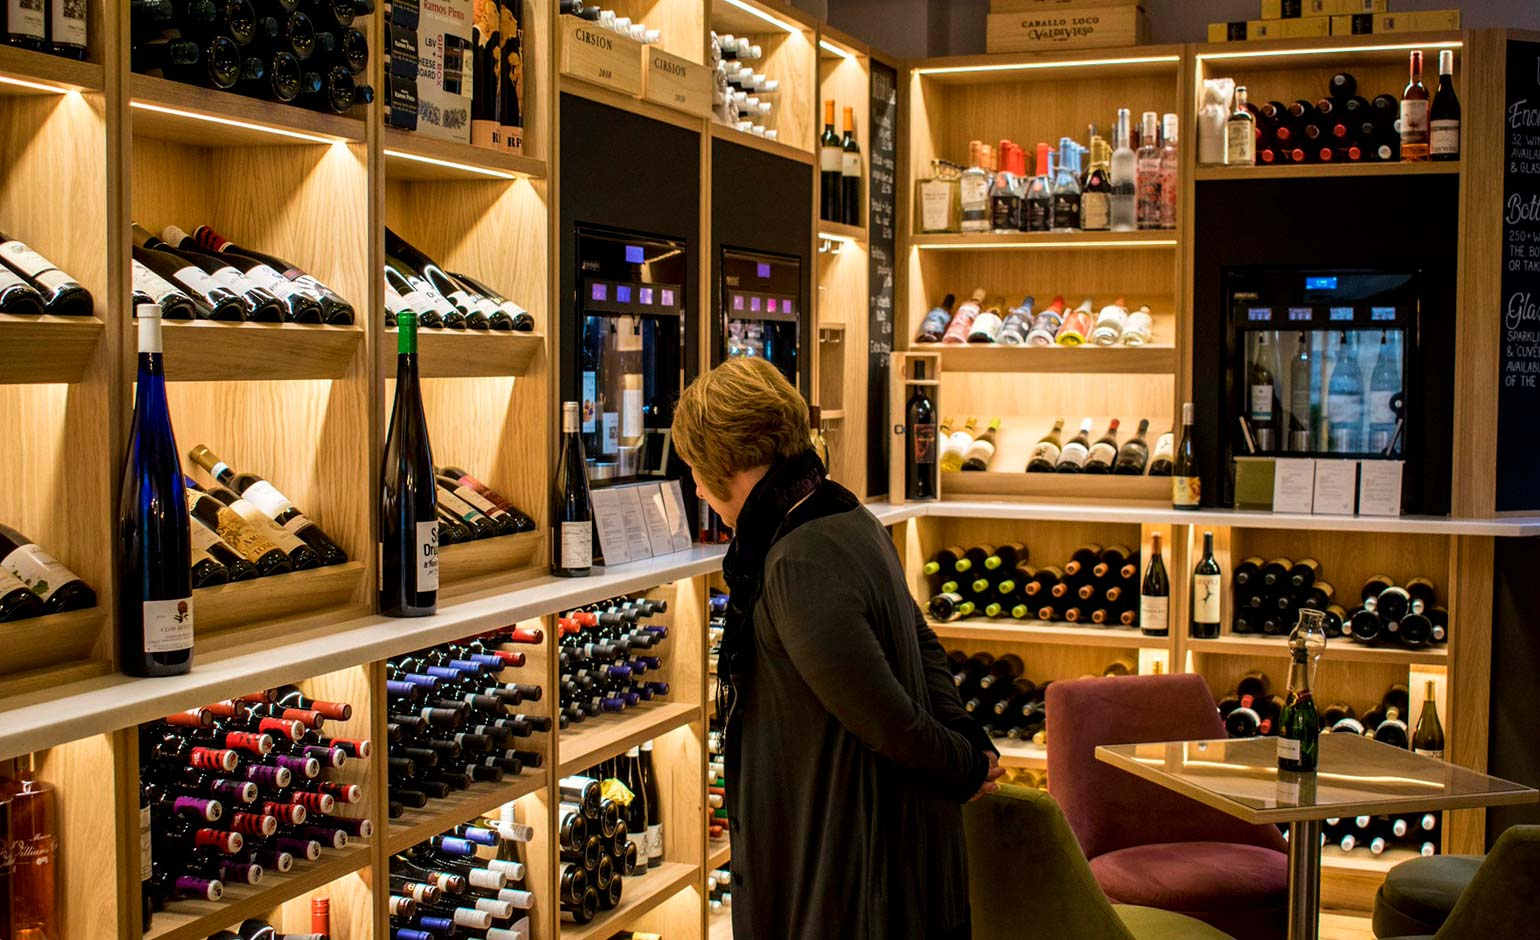 Wine business Le Vignoble receives 'Regional Merchant of the Year' award